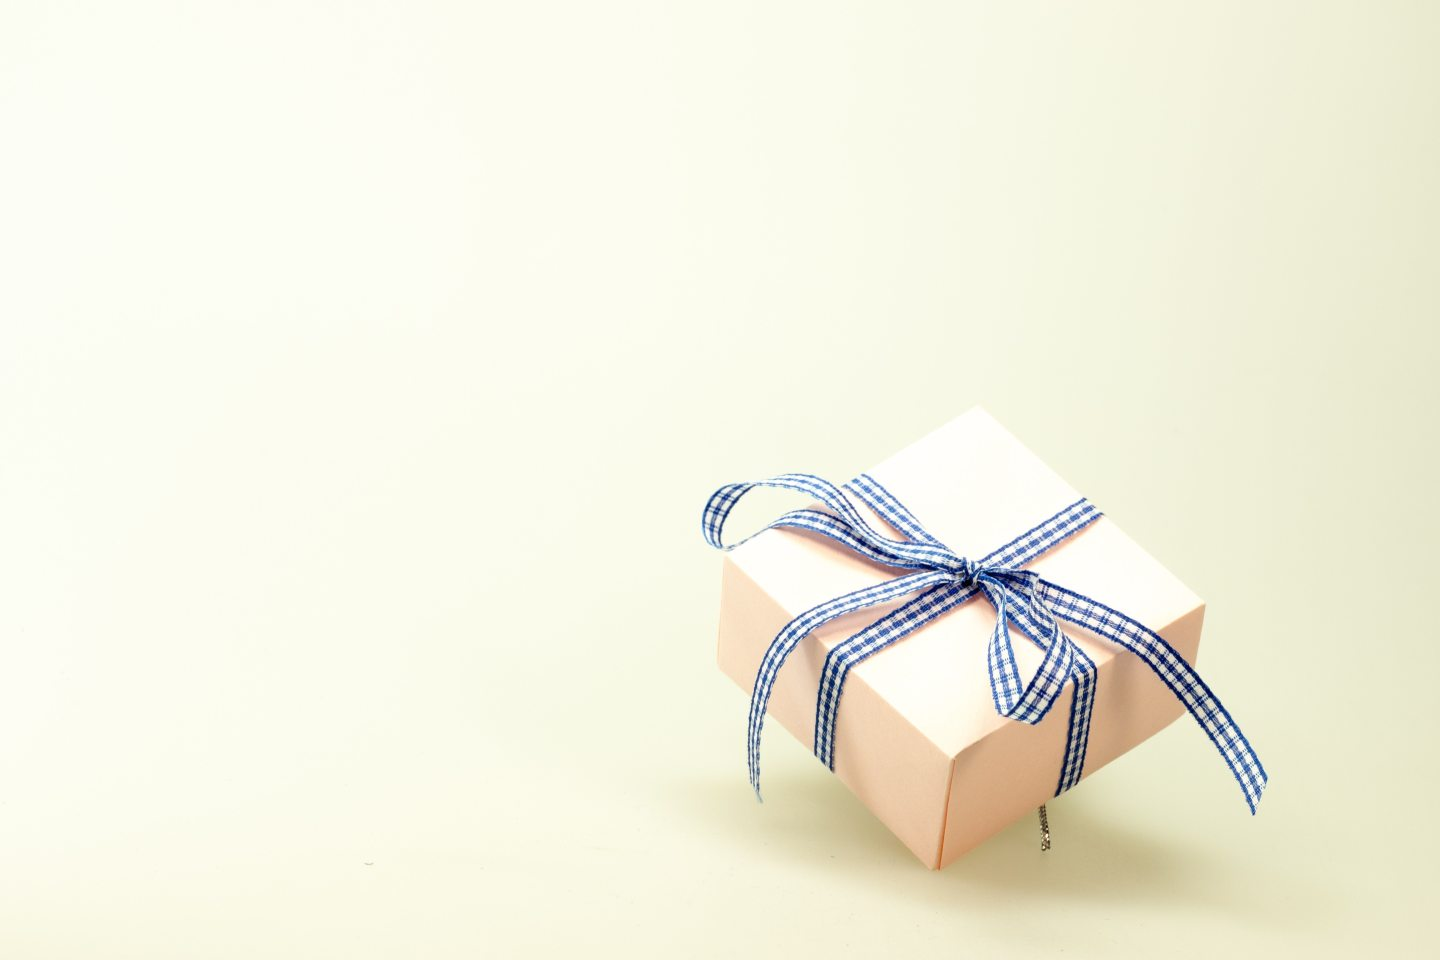 https://www.pexels.com/photo/blue-white-ribbon-on-pink-box-45238/